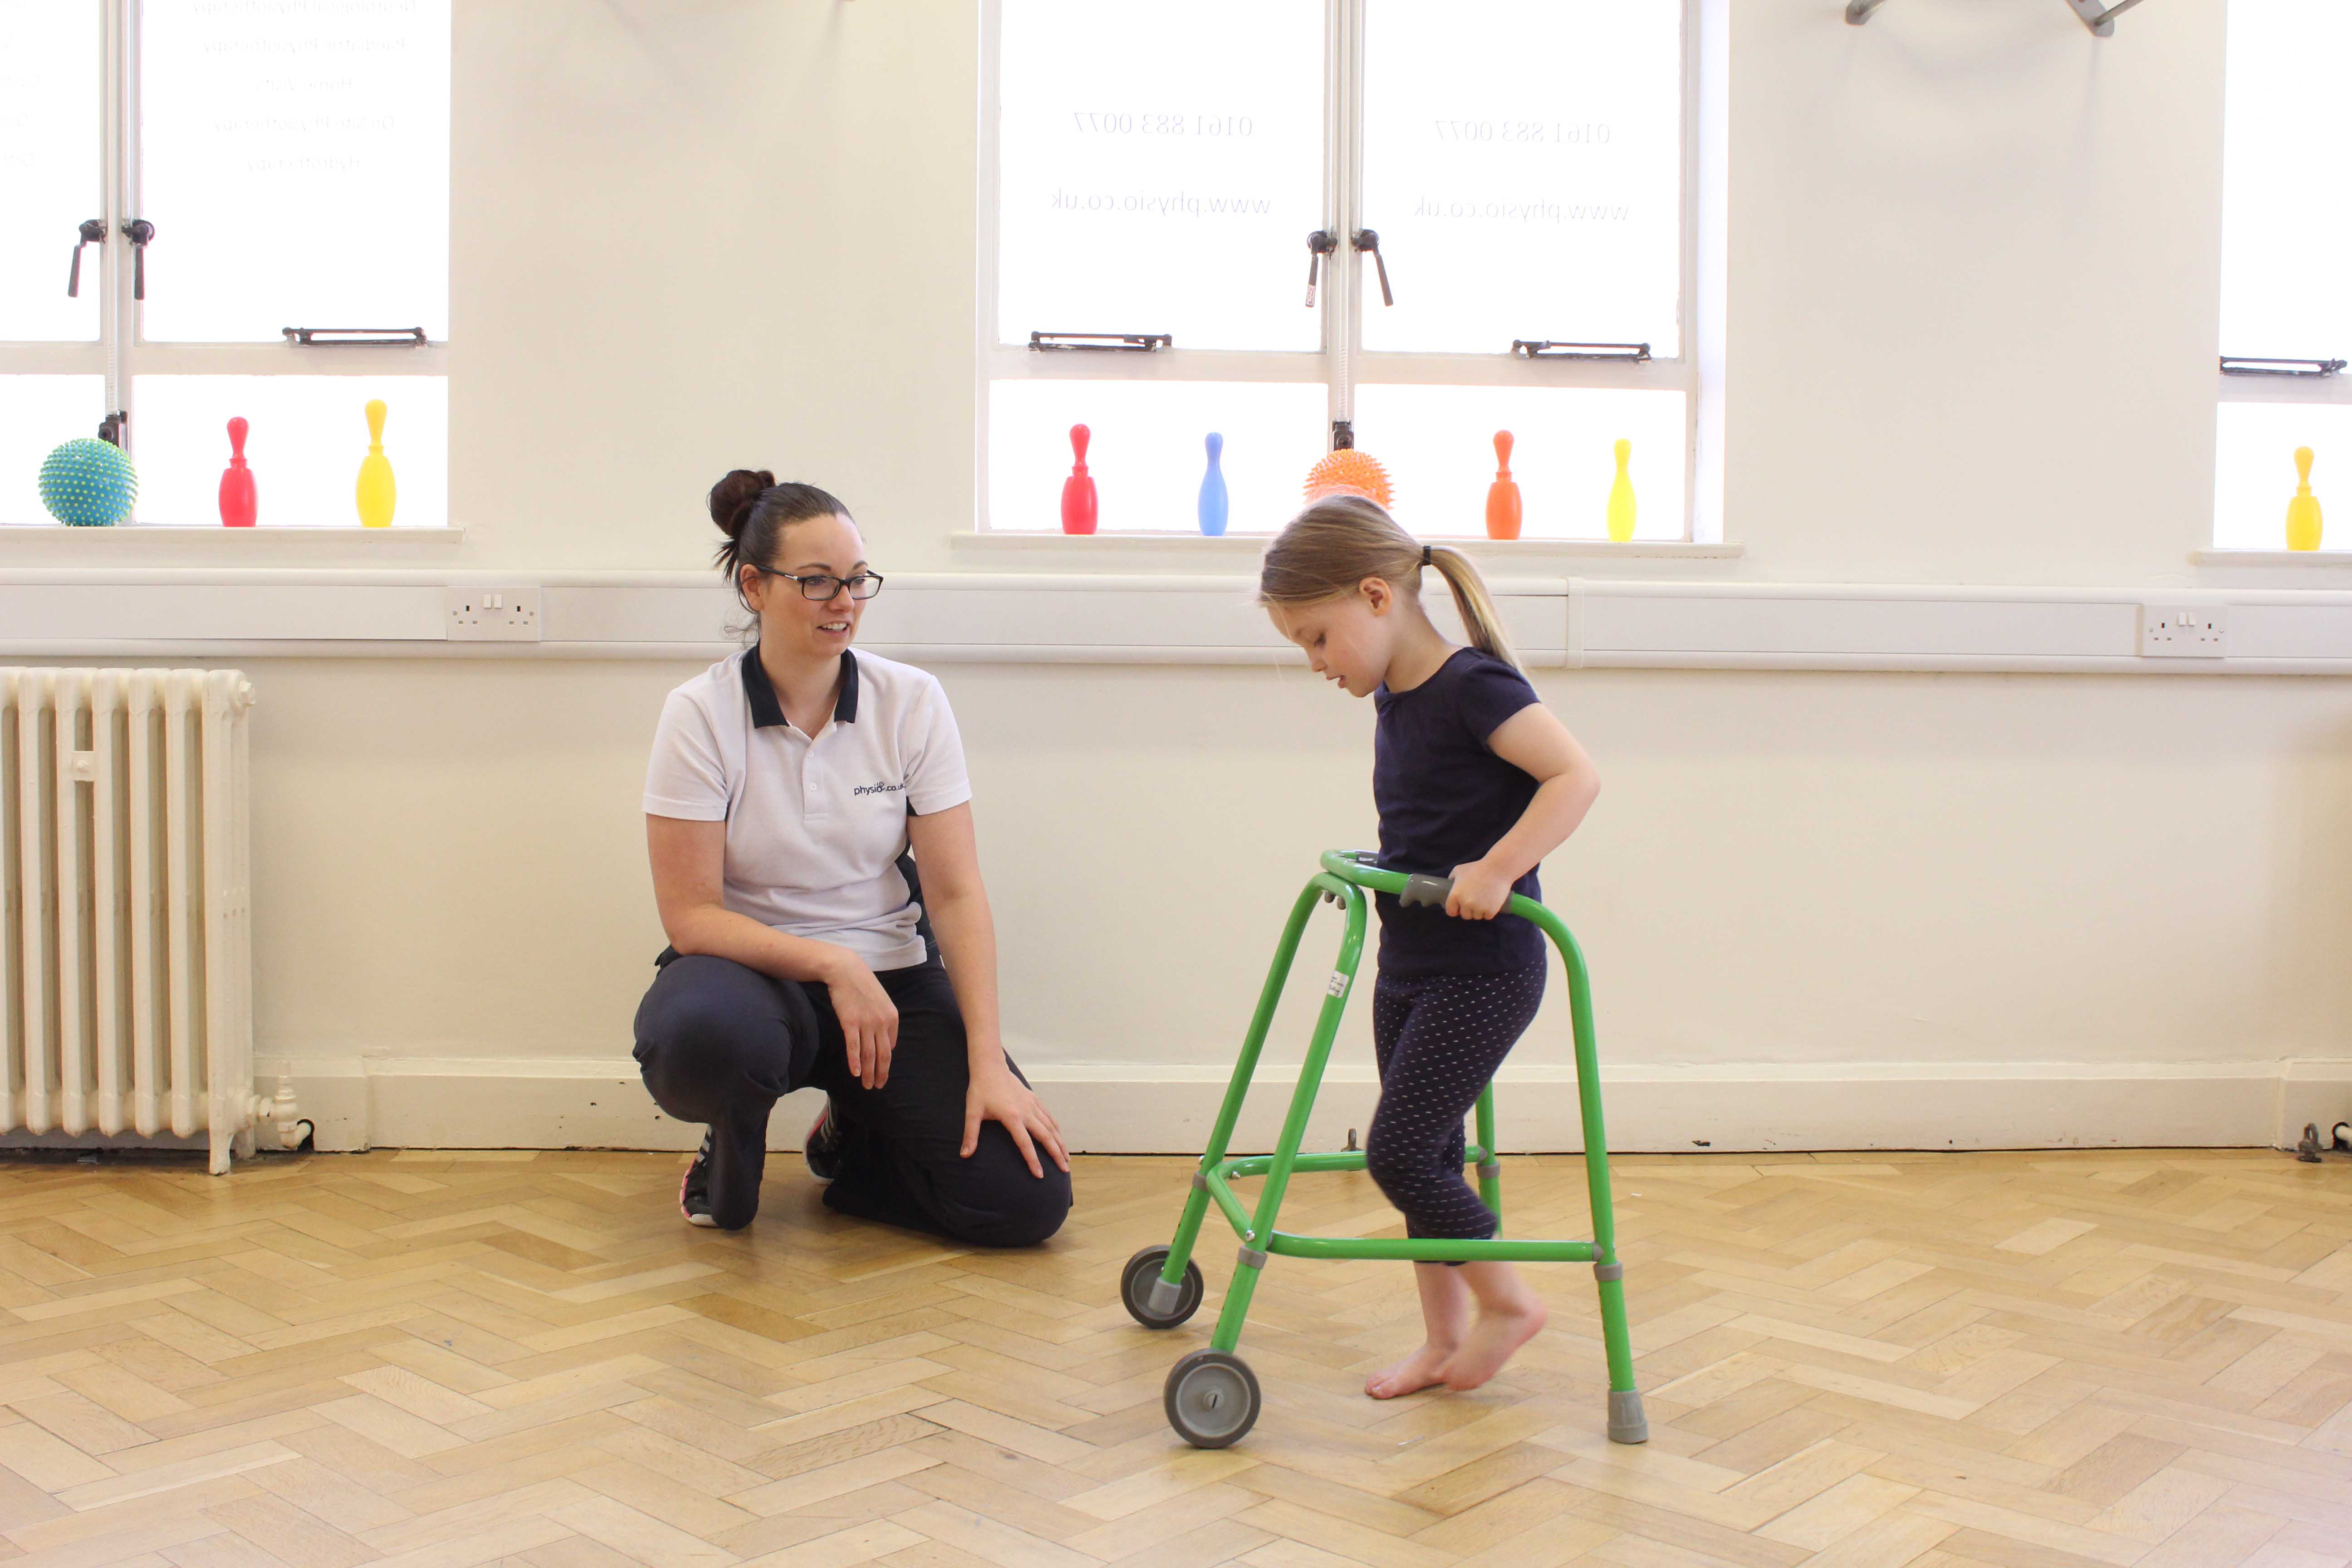 Mobility exercises using a wheeled walking frame under supervision of a paediatric physiotherapist